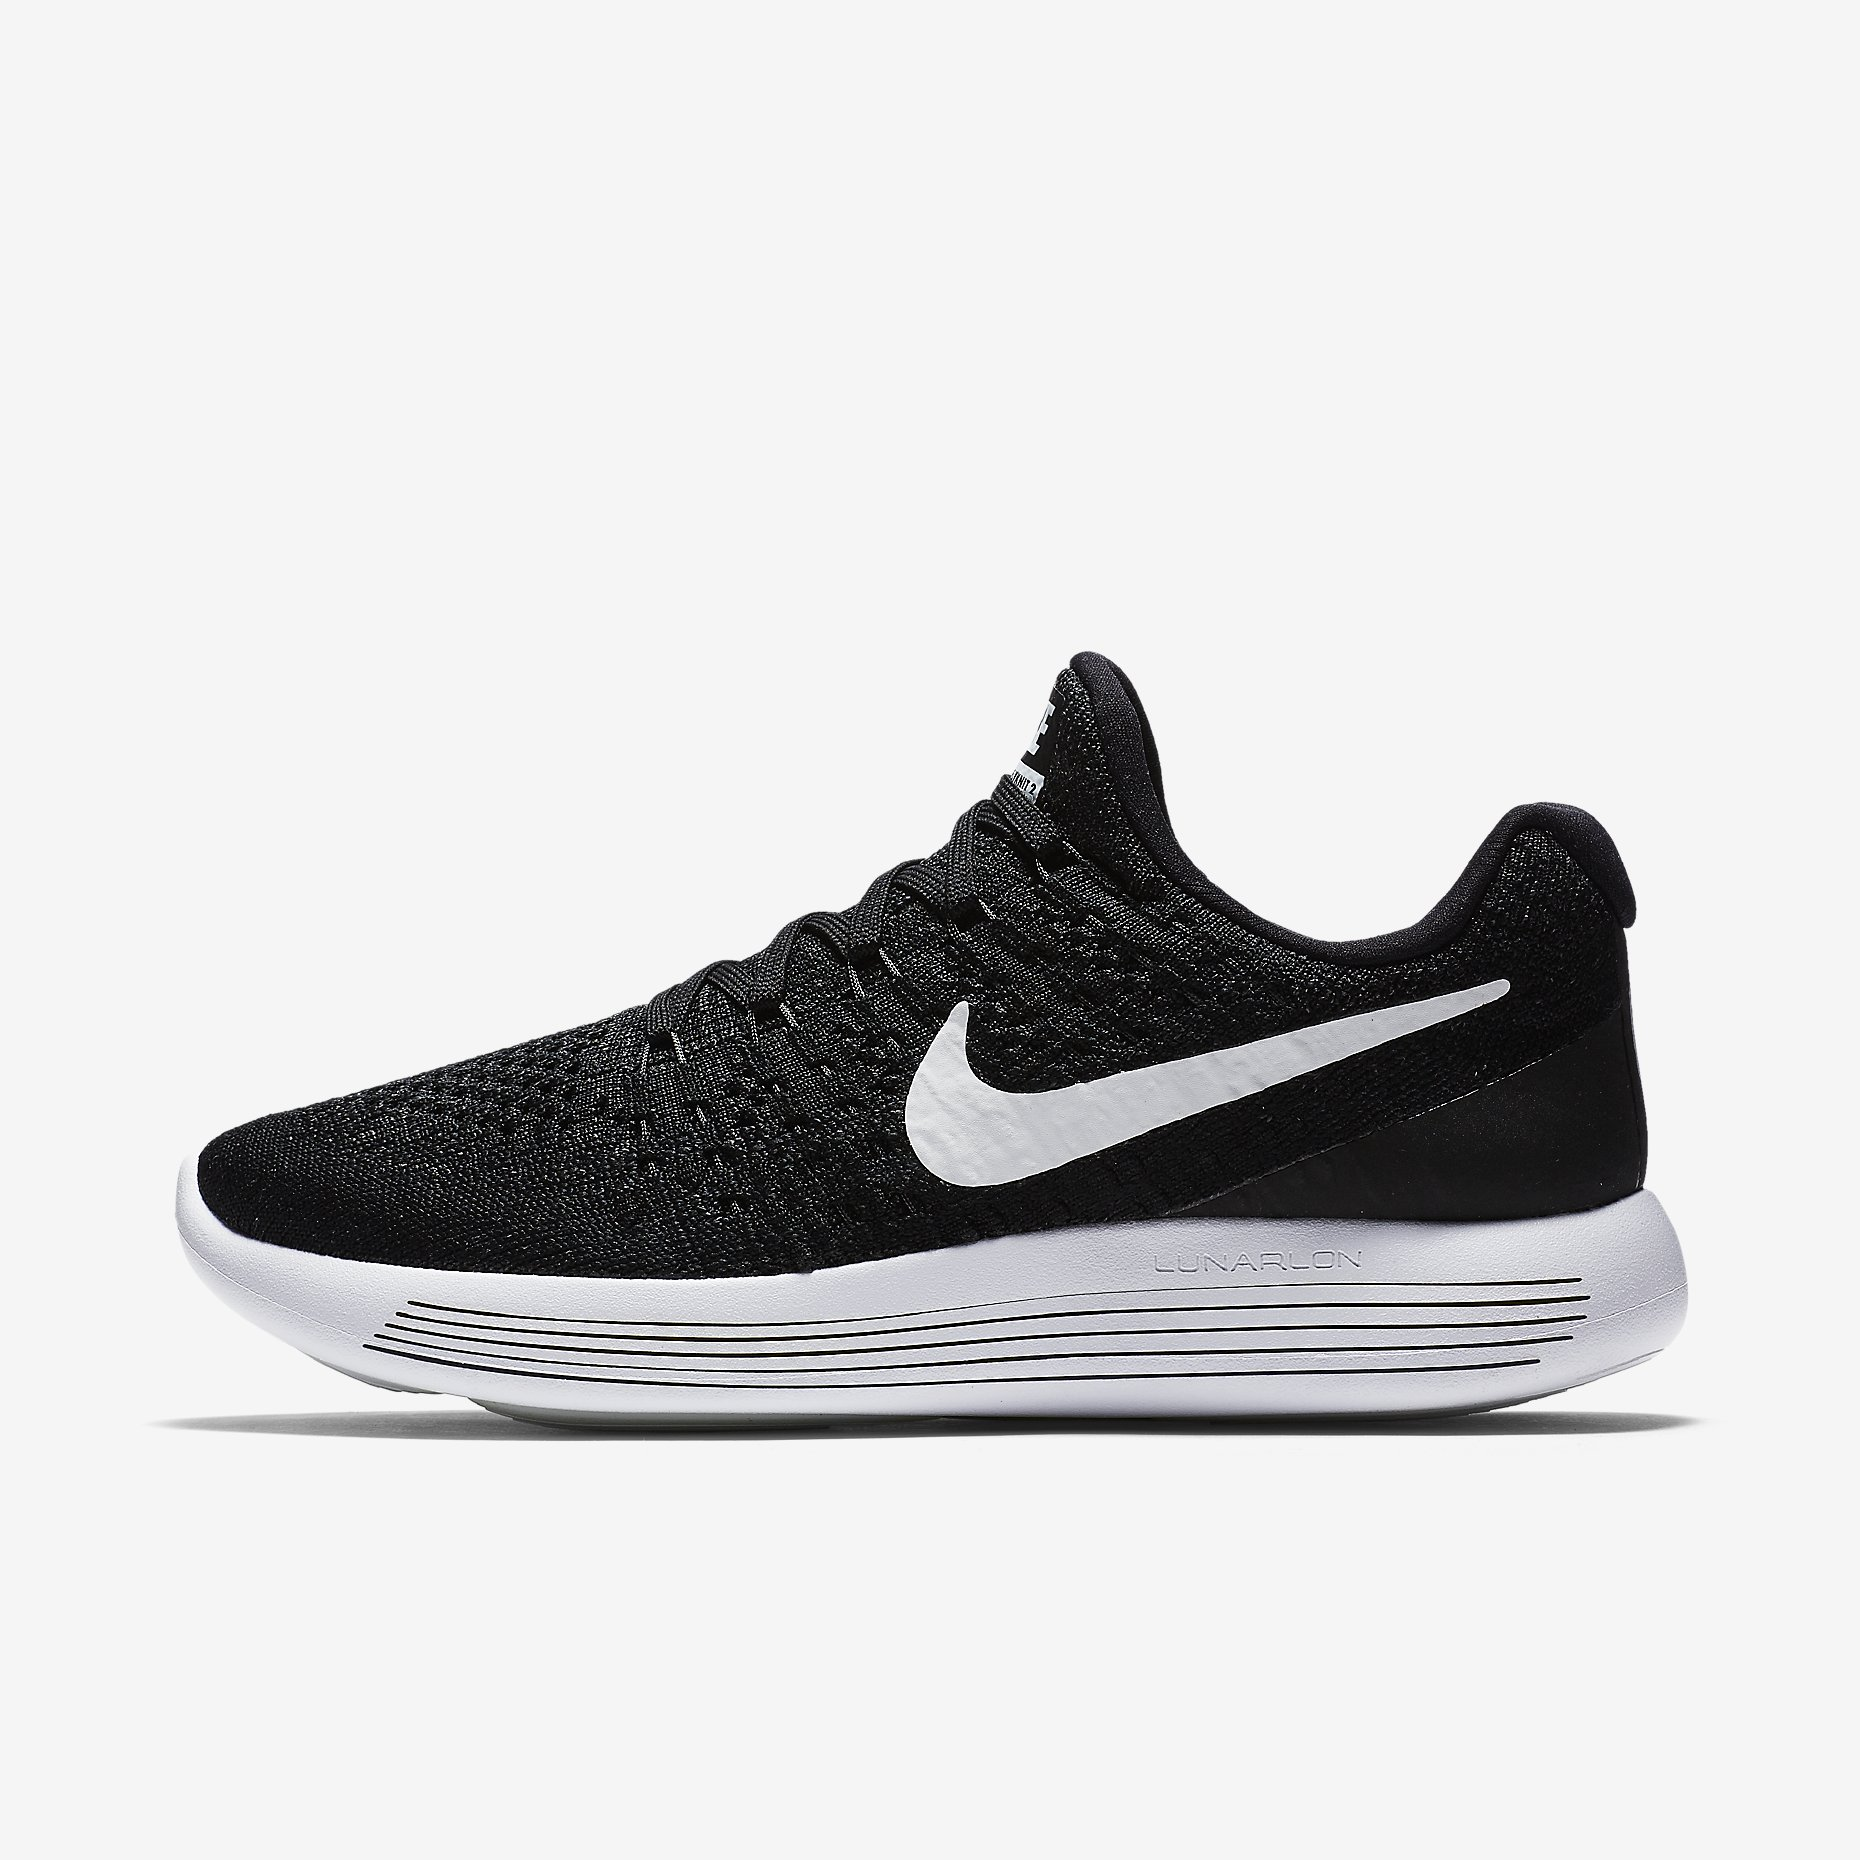 627c9b1ec44 Nike LunarEpic Low FlyKnit 2 Womens Running Shoes - Alton Sports